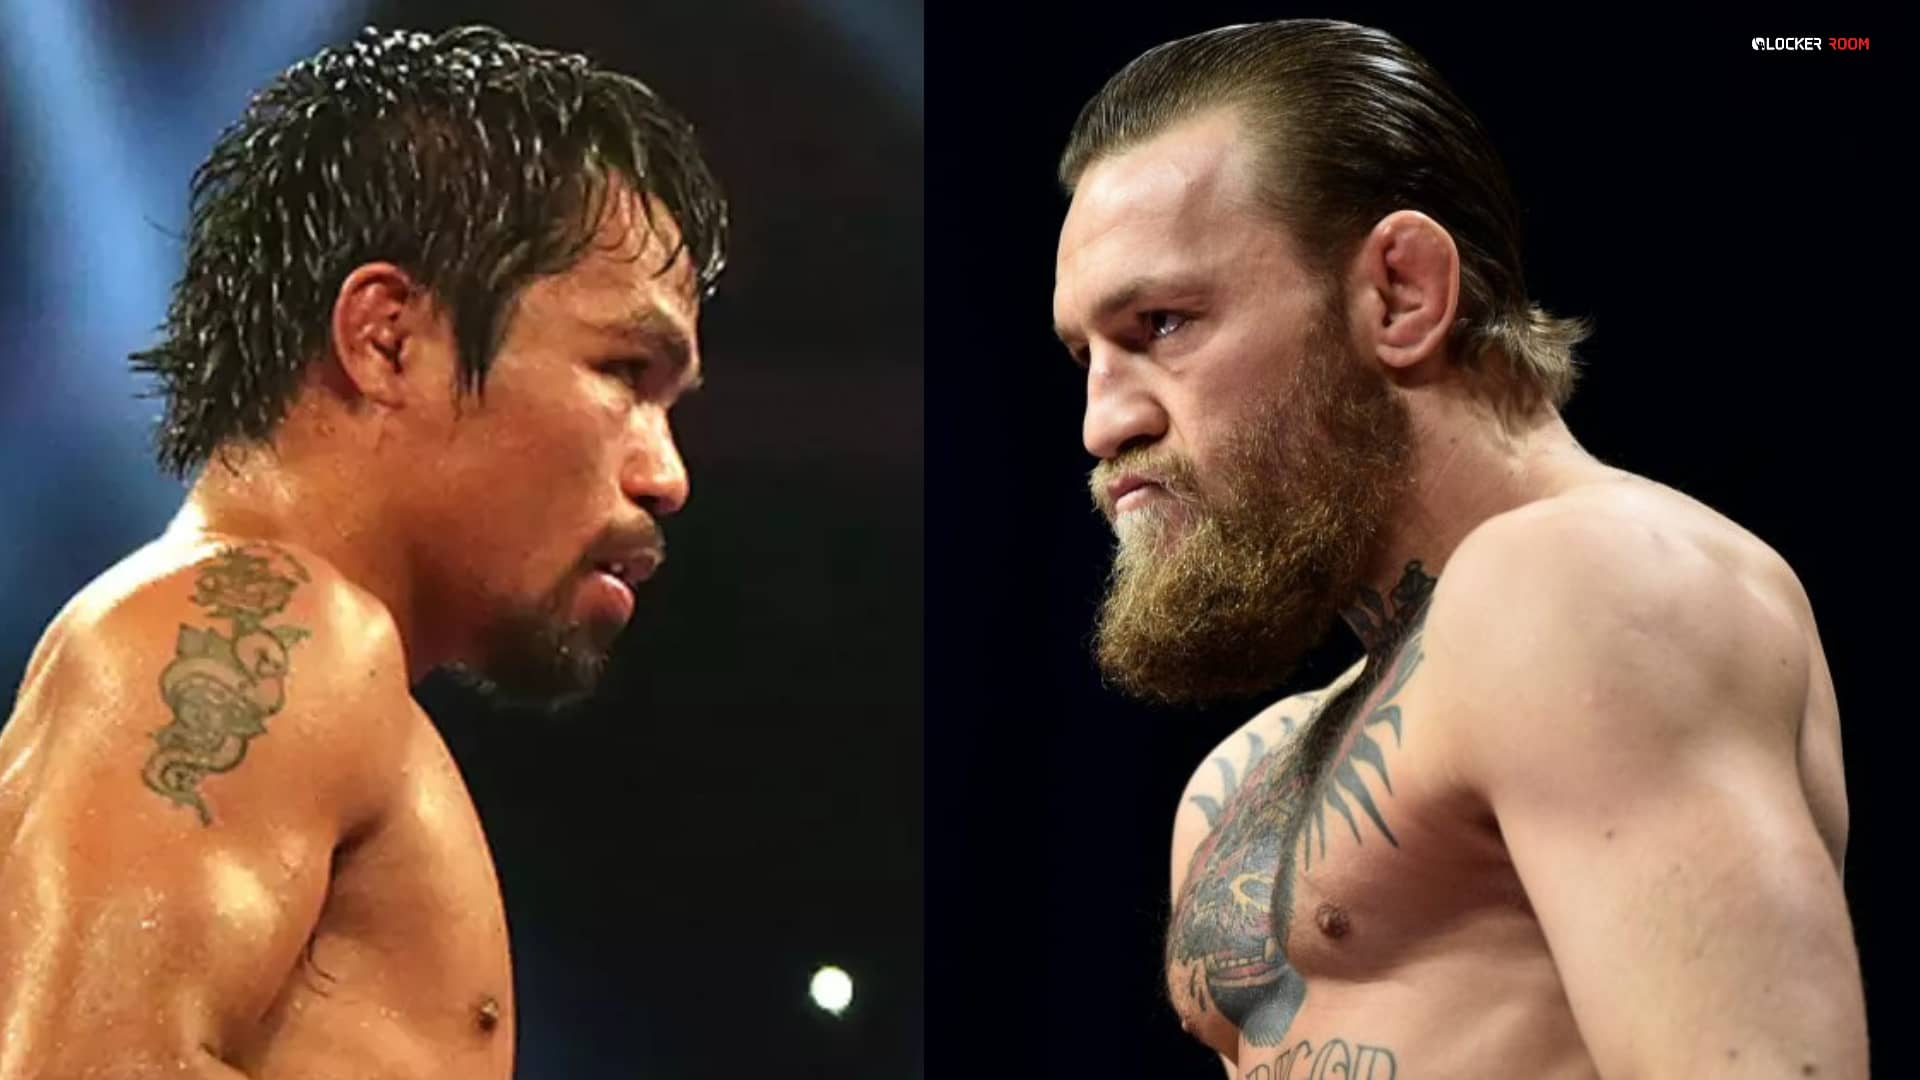 https://lockerroom.in/blog/view/Conor-McGregor-Manny-Pacquiao